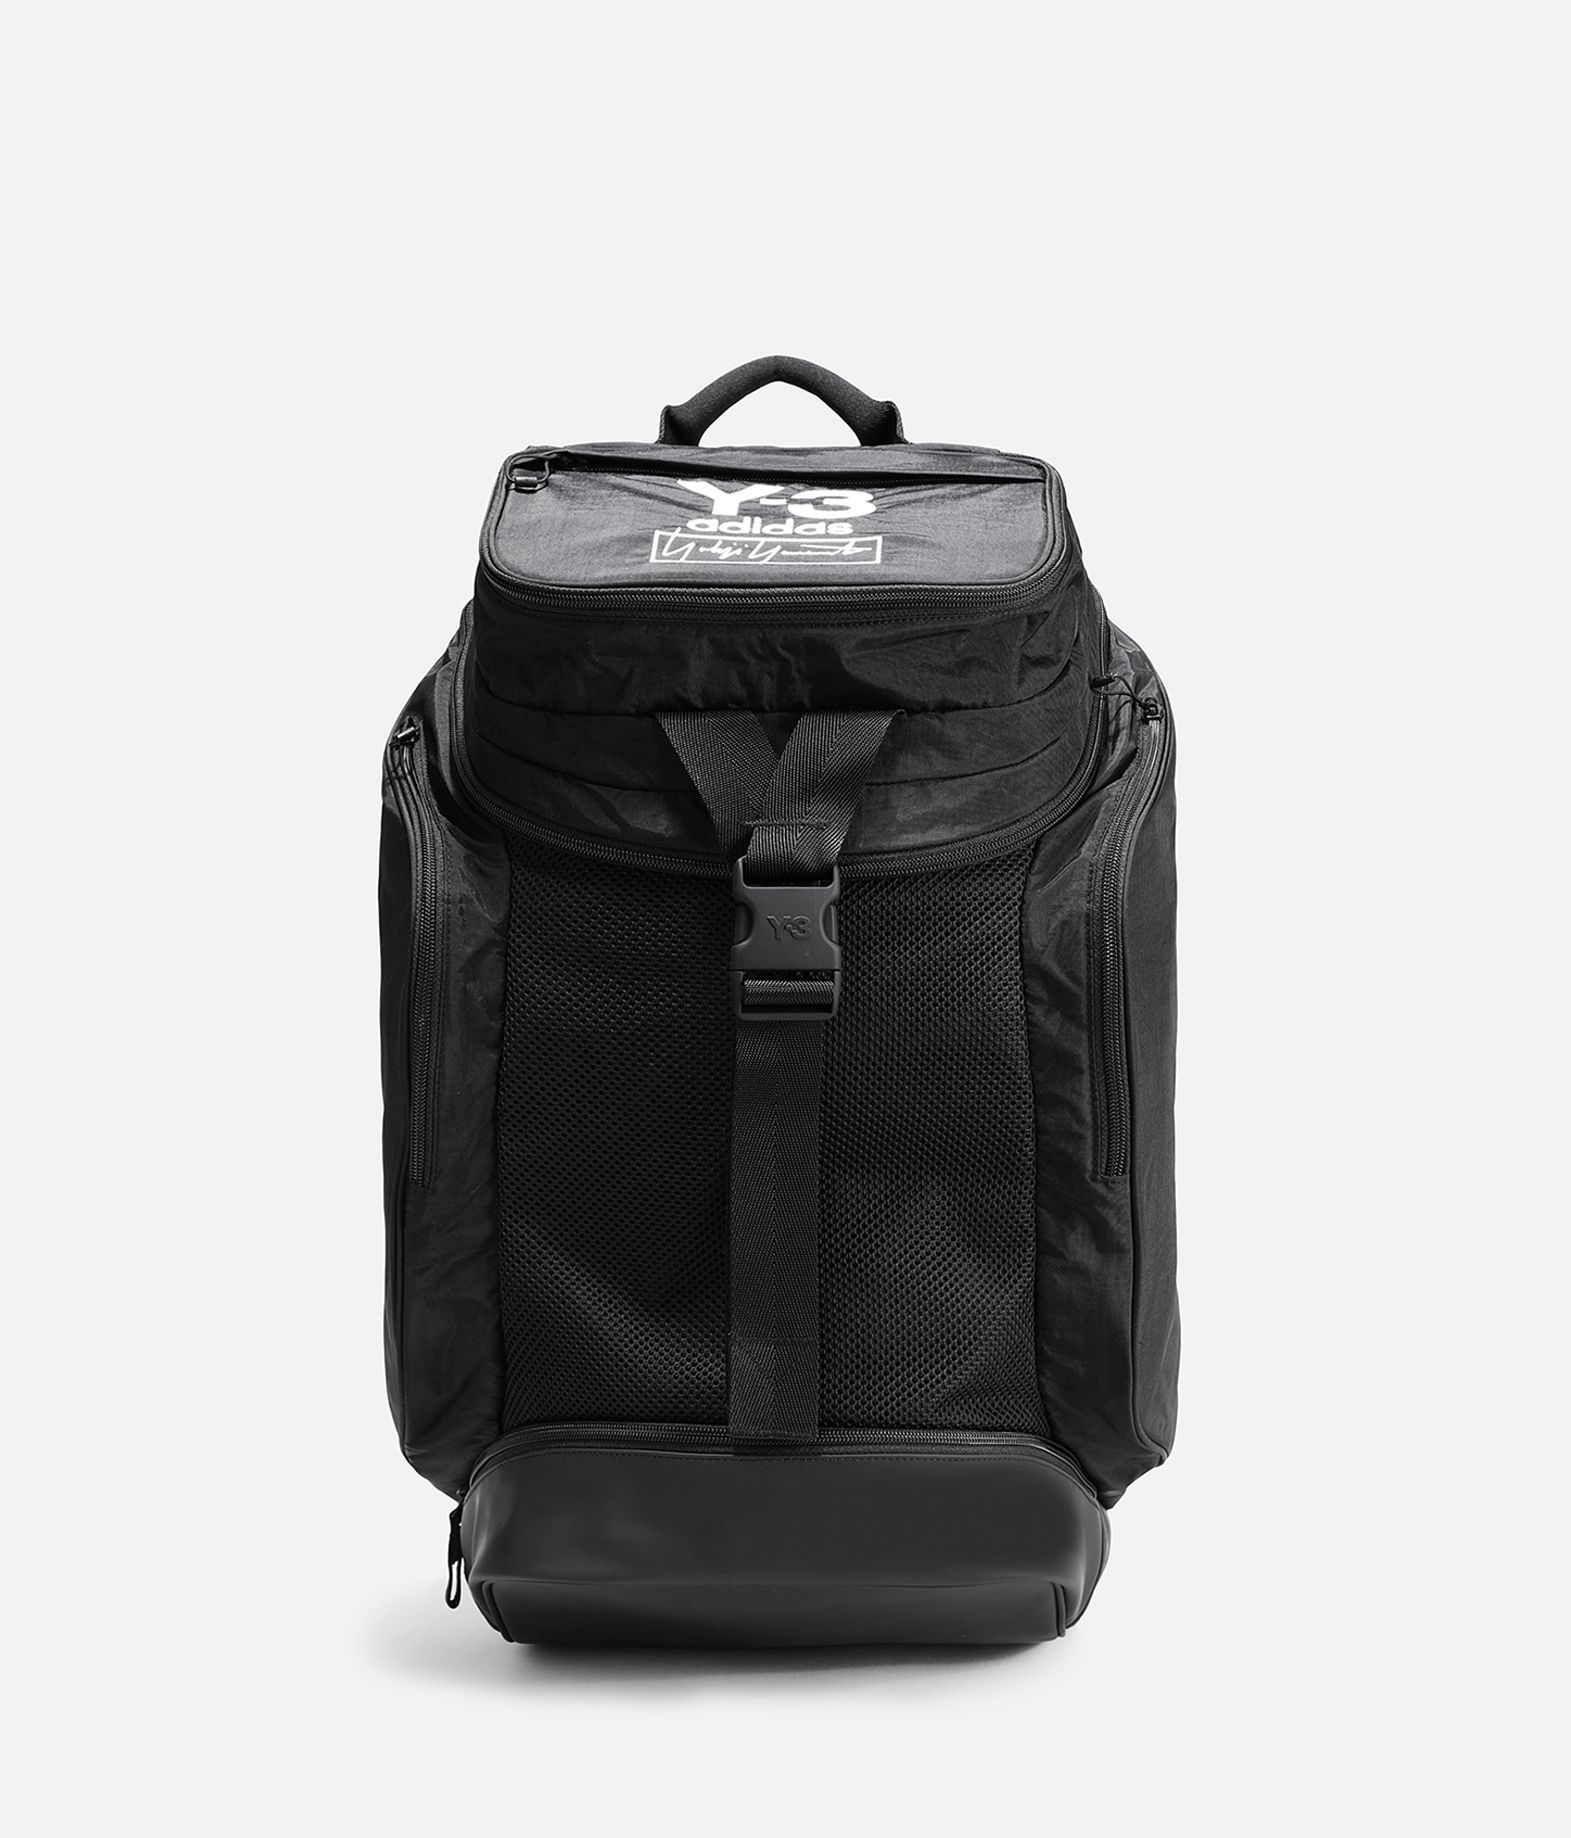 Y-3 Y-3 Travel Backpack リュックサック E f